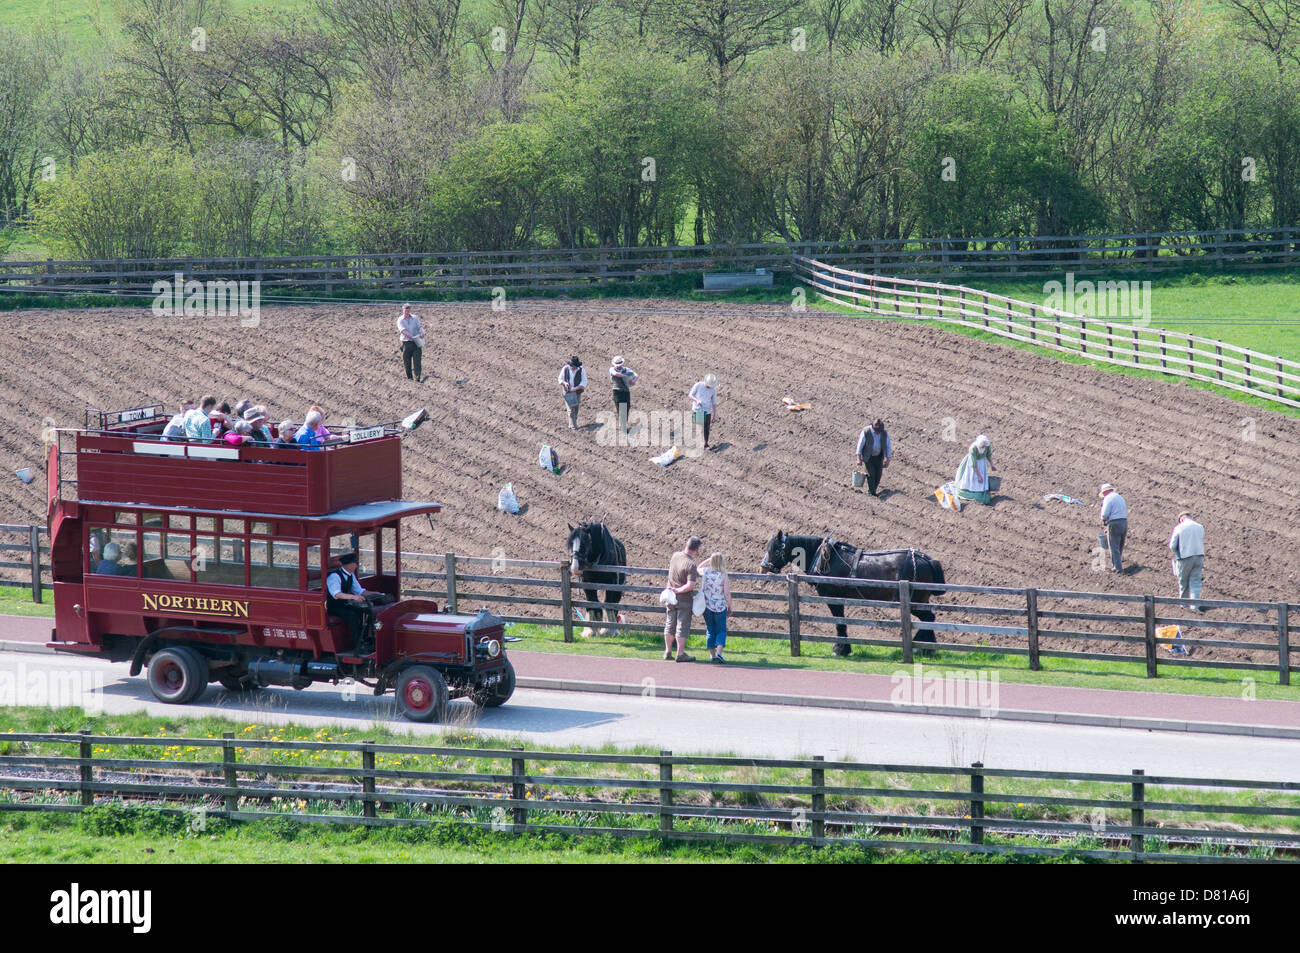 A replica Northern bus passes workers planting potatoes in field Beamish Museum north east England UK Stock Photo